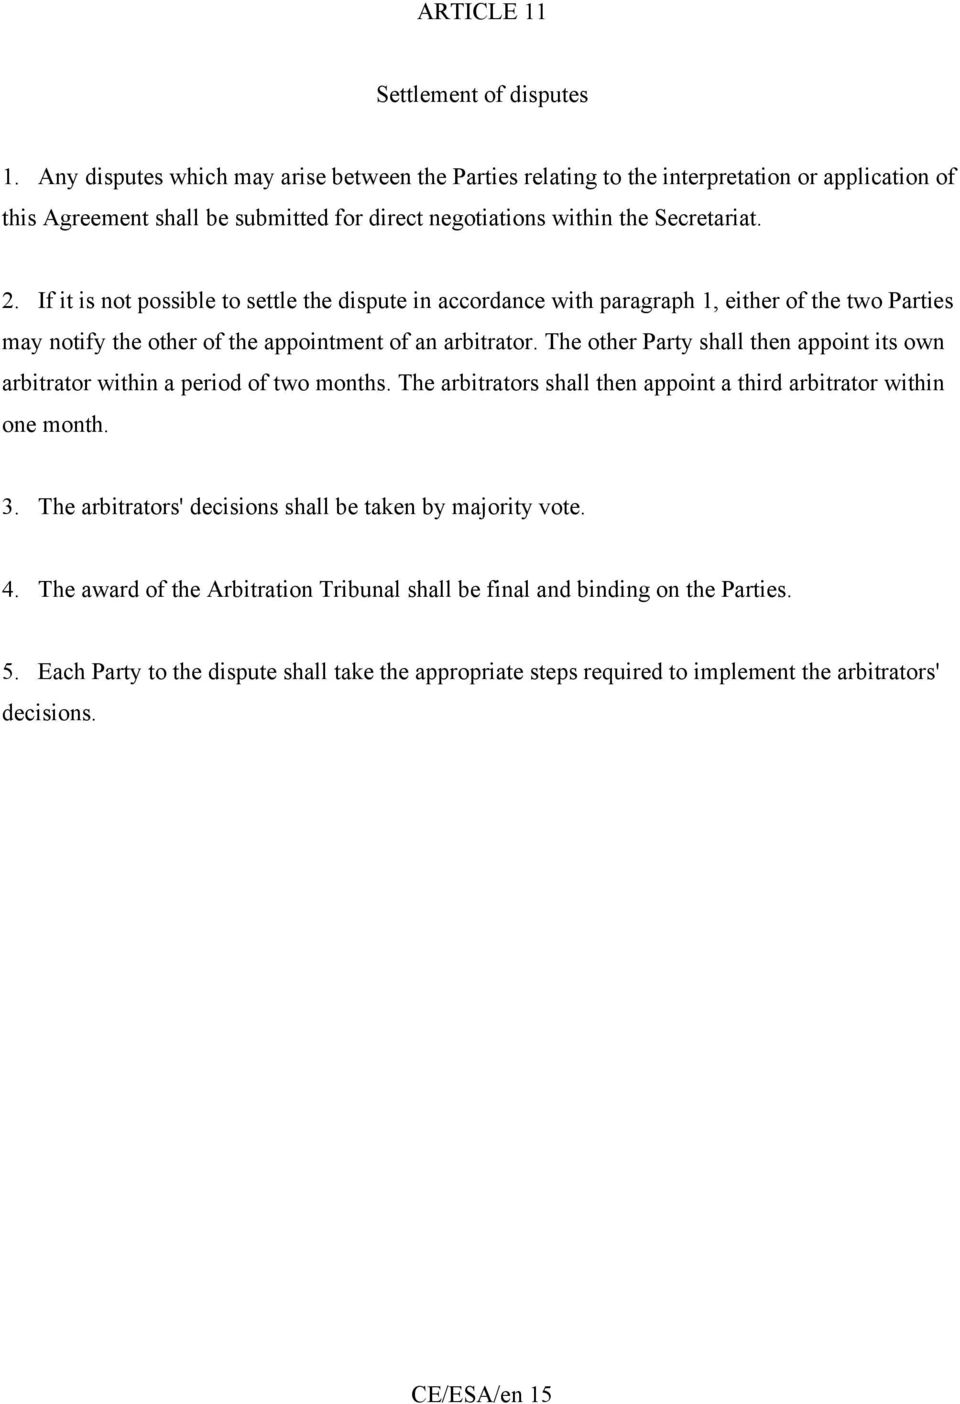 If it is not possible to settle the dispute in accordance with paragraph 1, either of the two Parties may notify the other of the appointment of an arbitrator.